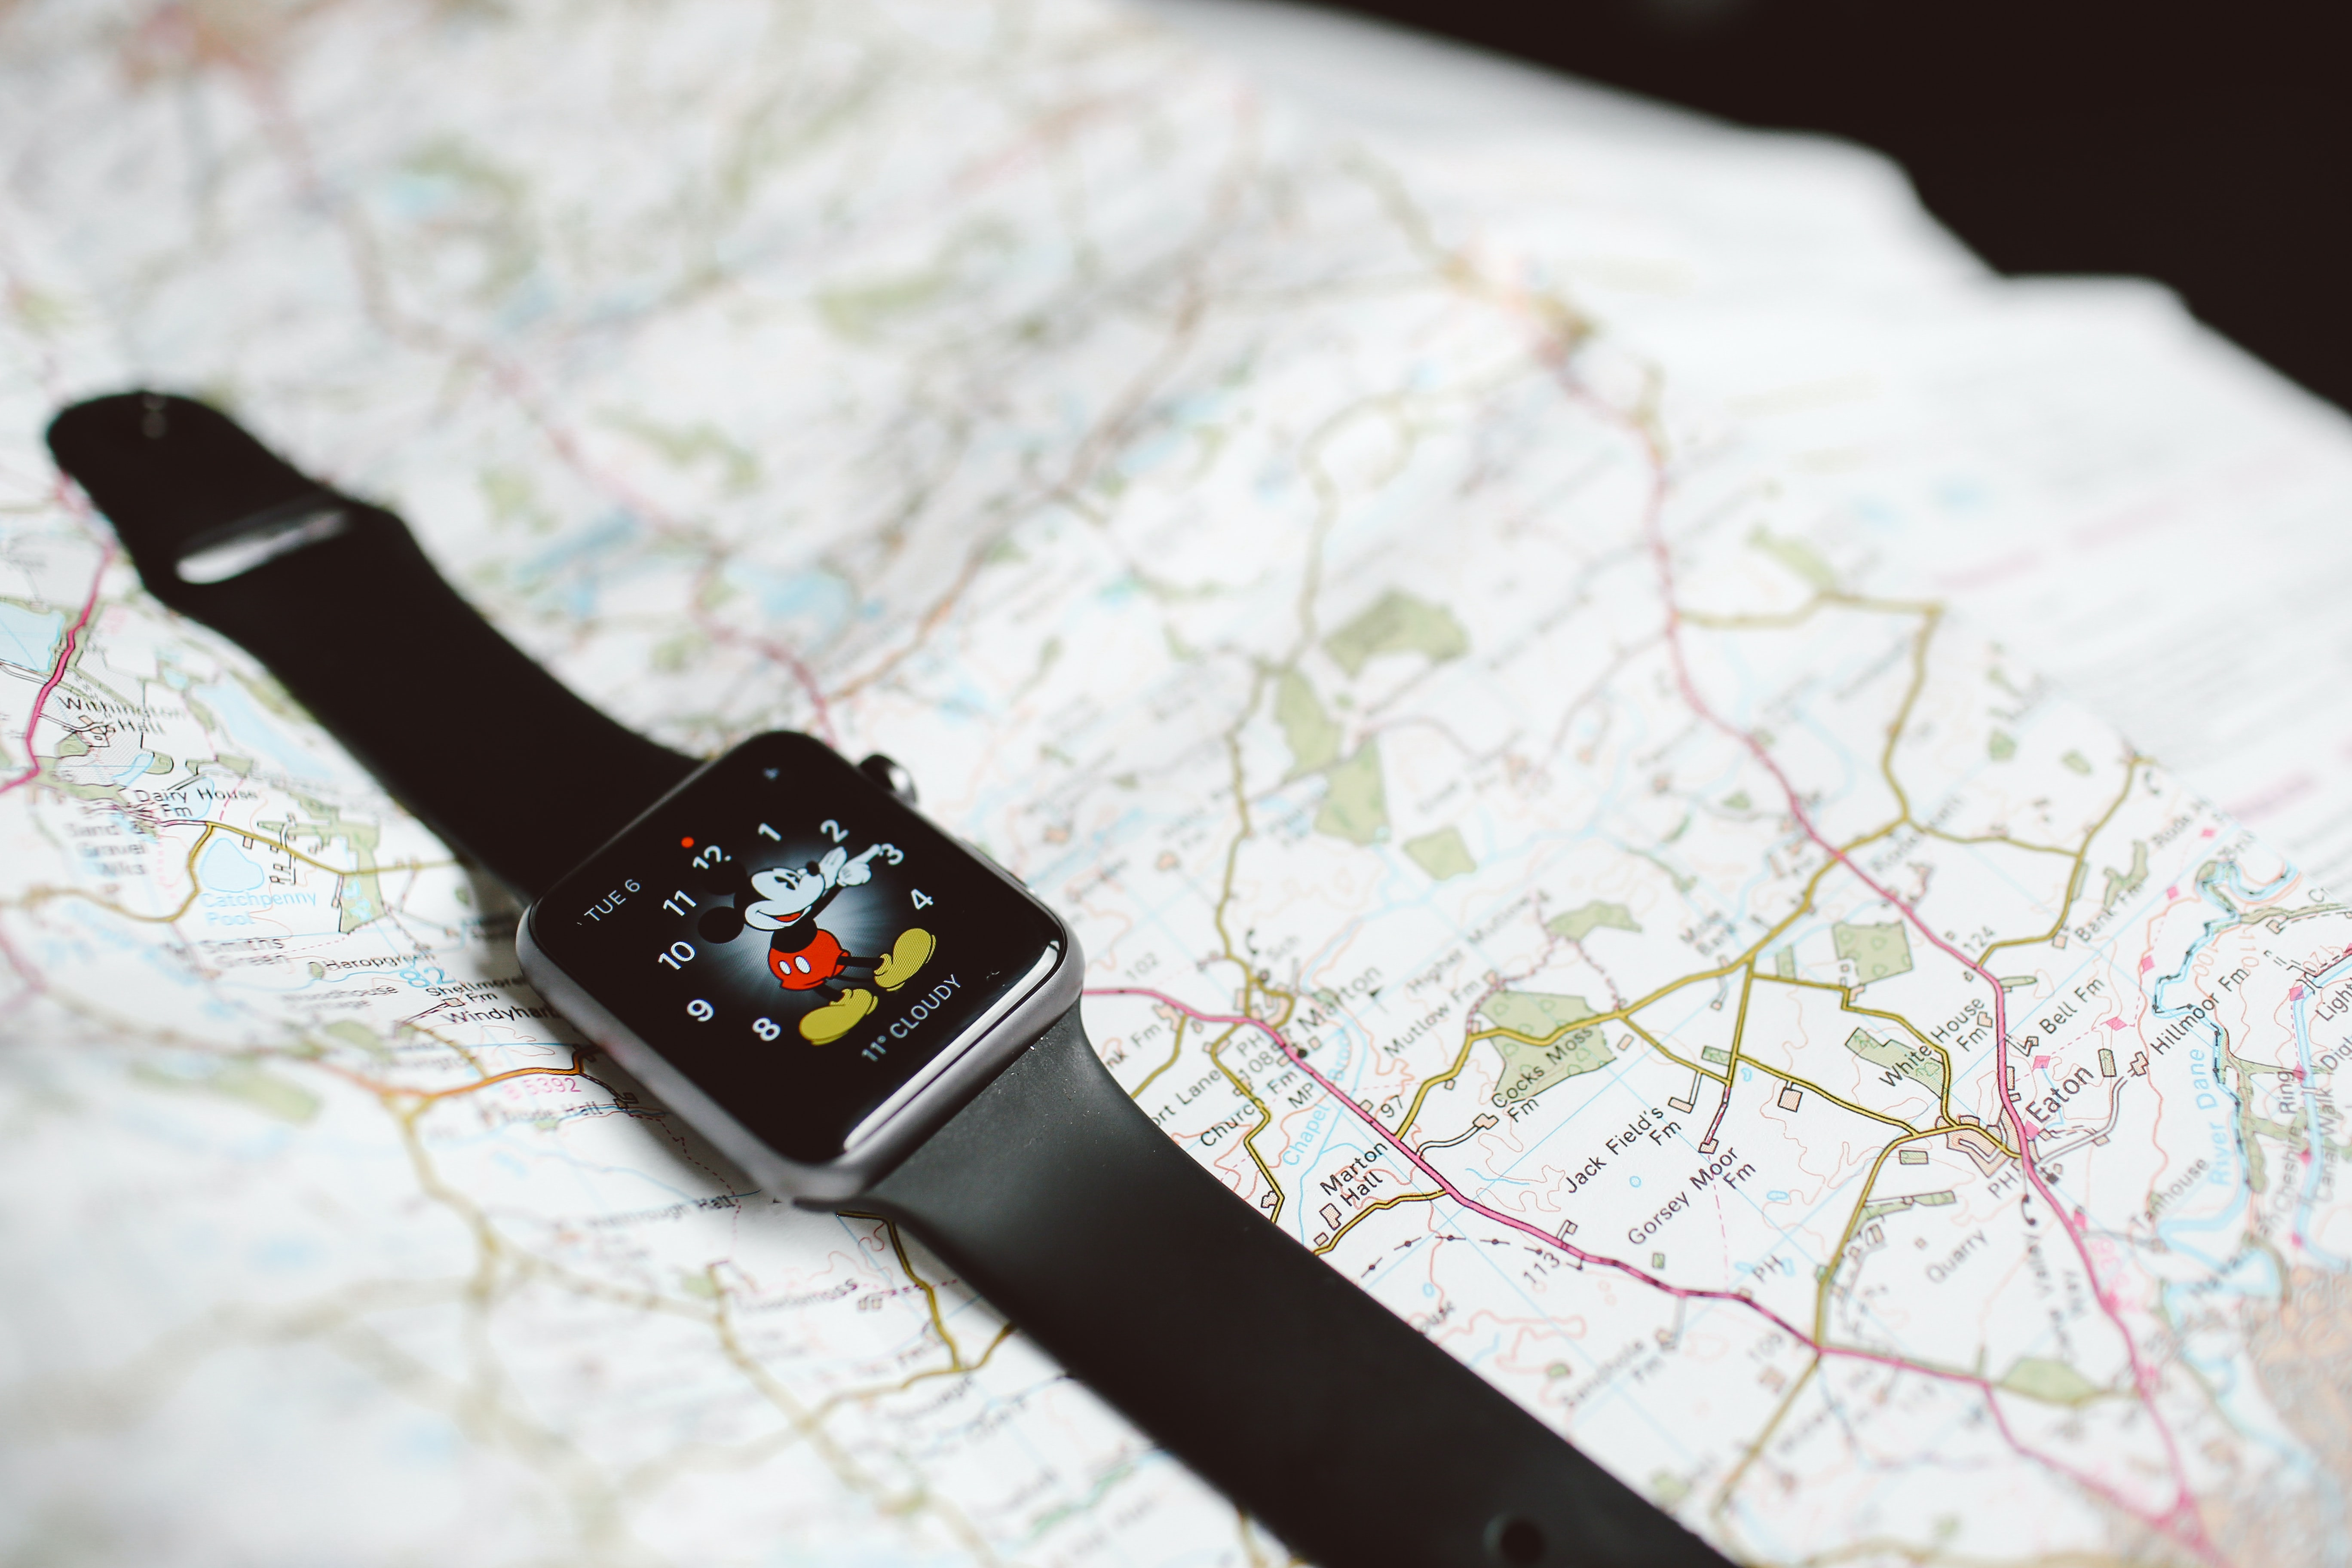 A smart watch with the Mickey theme pointing at 2:15 while resting on a map of Eaton